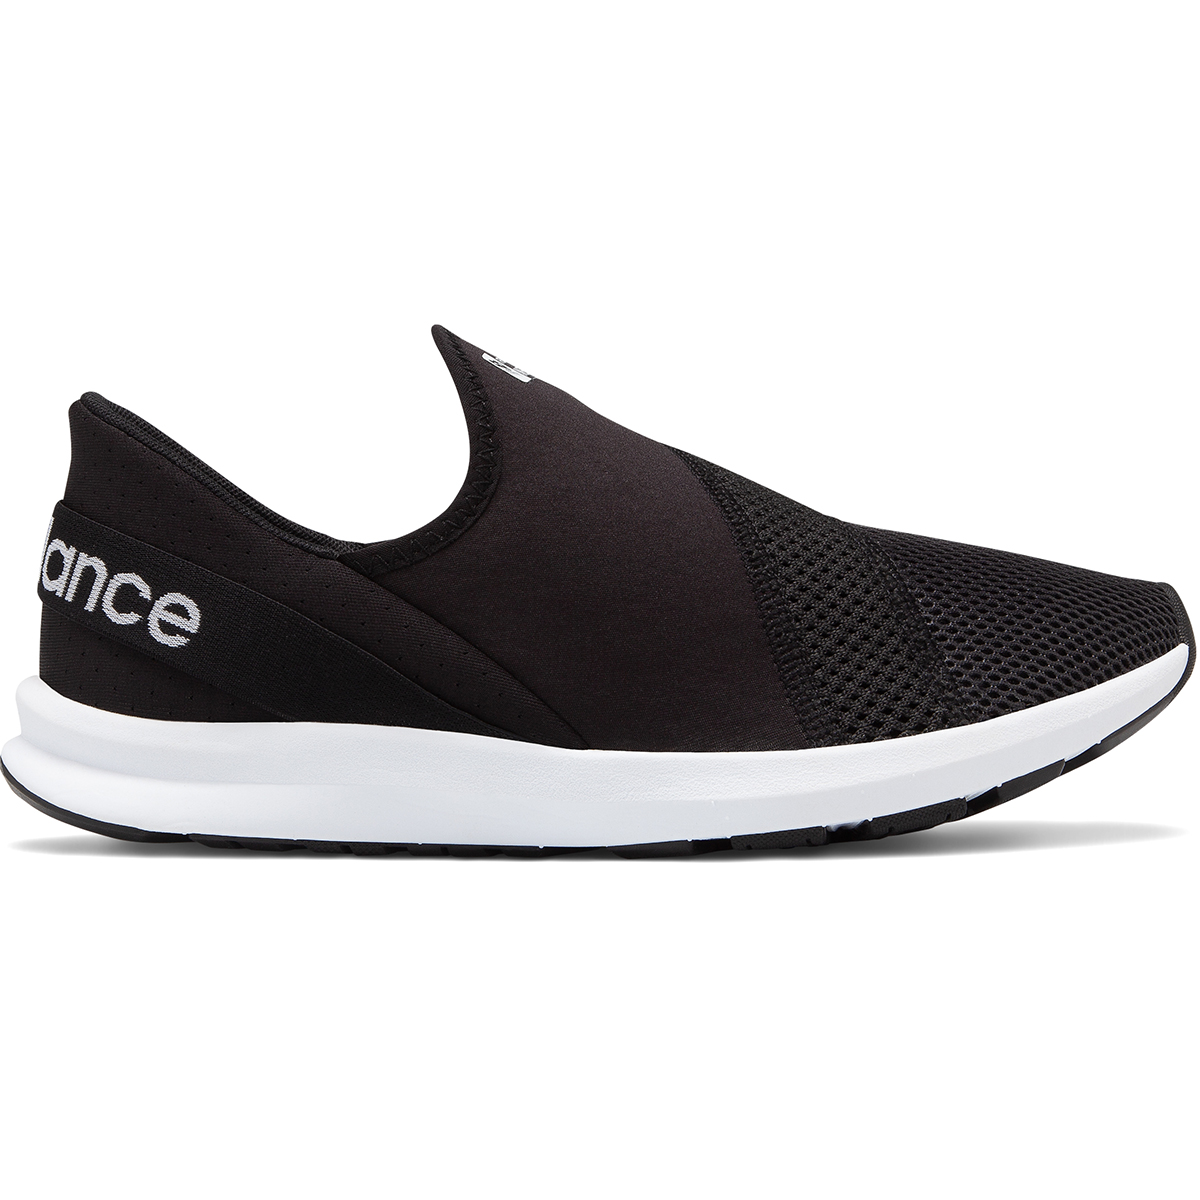 New Balance Women's Fuelcore Nergize Easy Slip-On Shoes - Black, 8.5